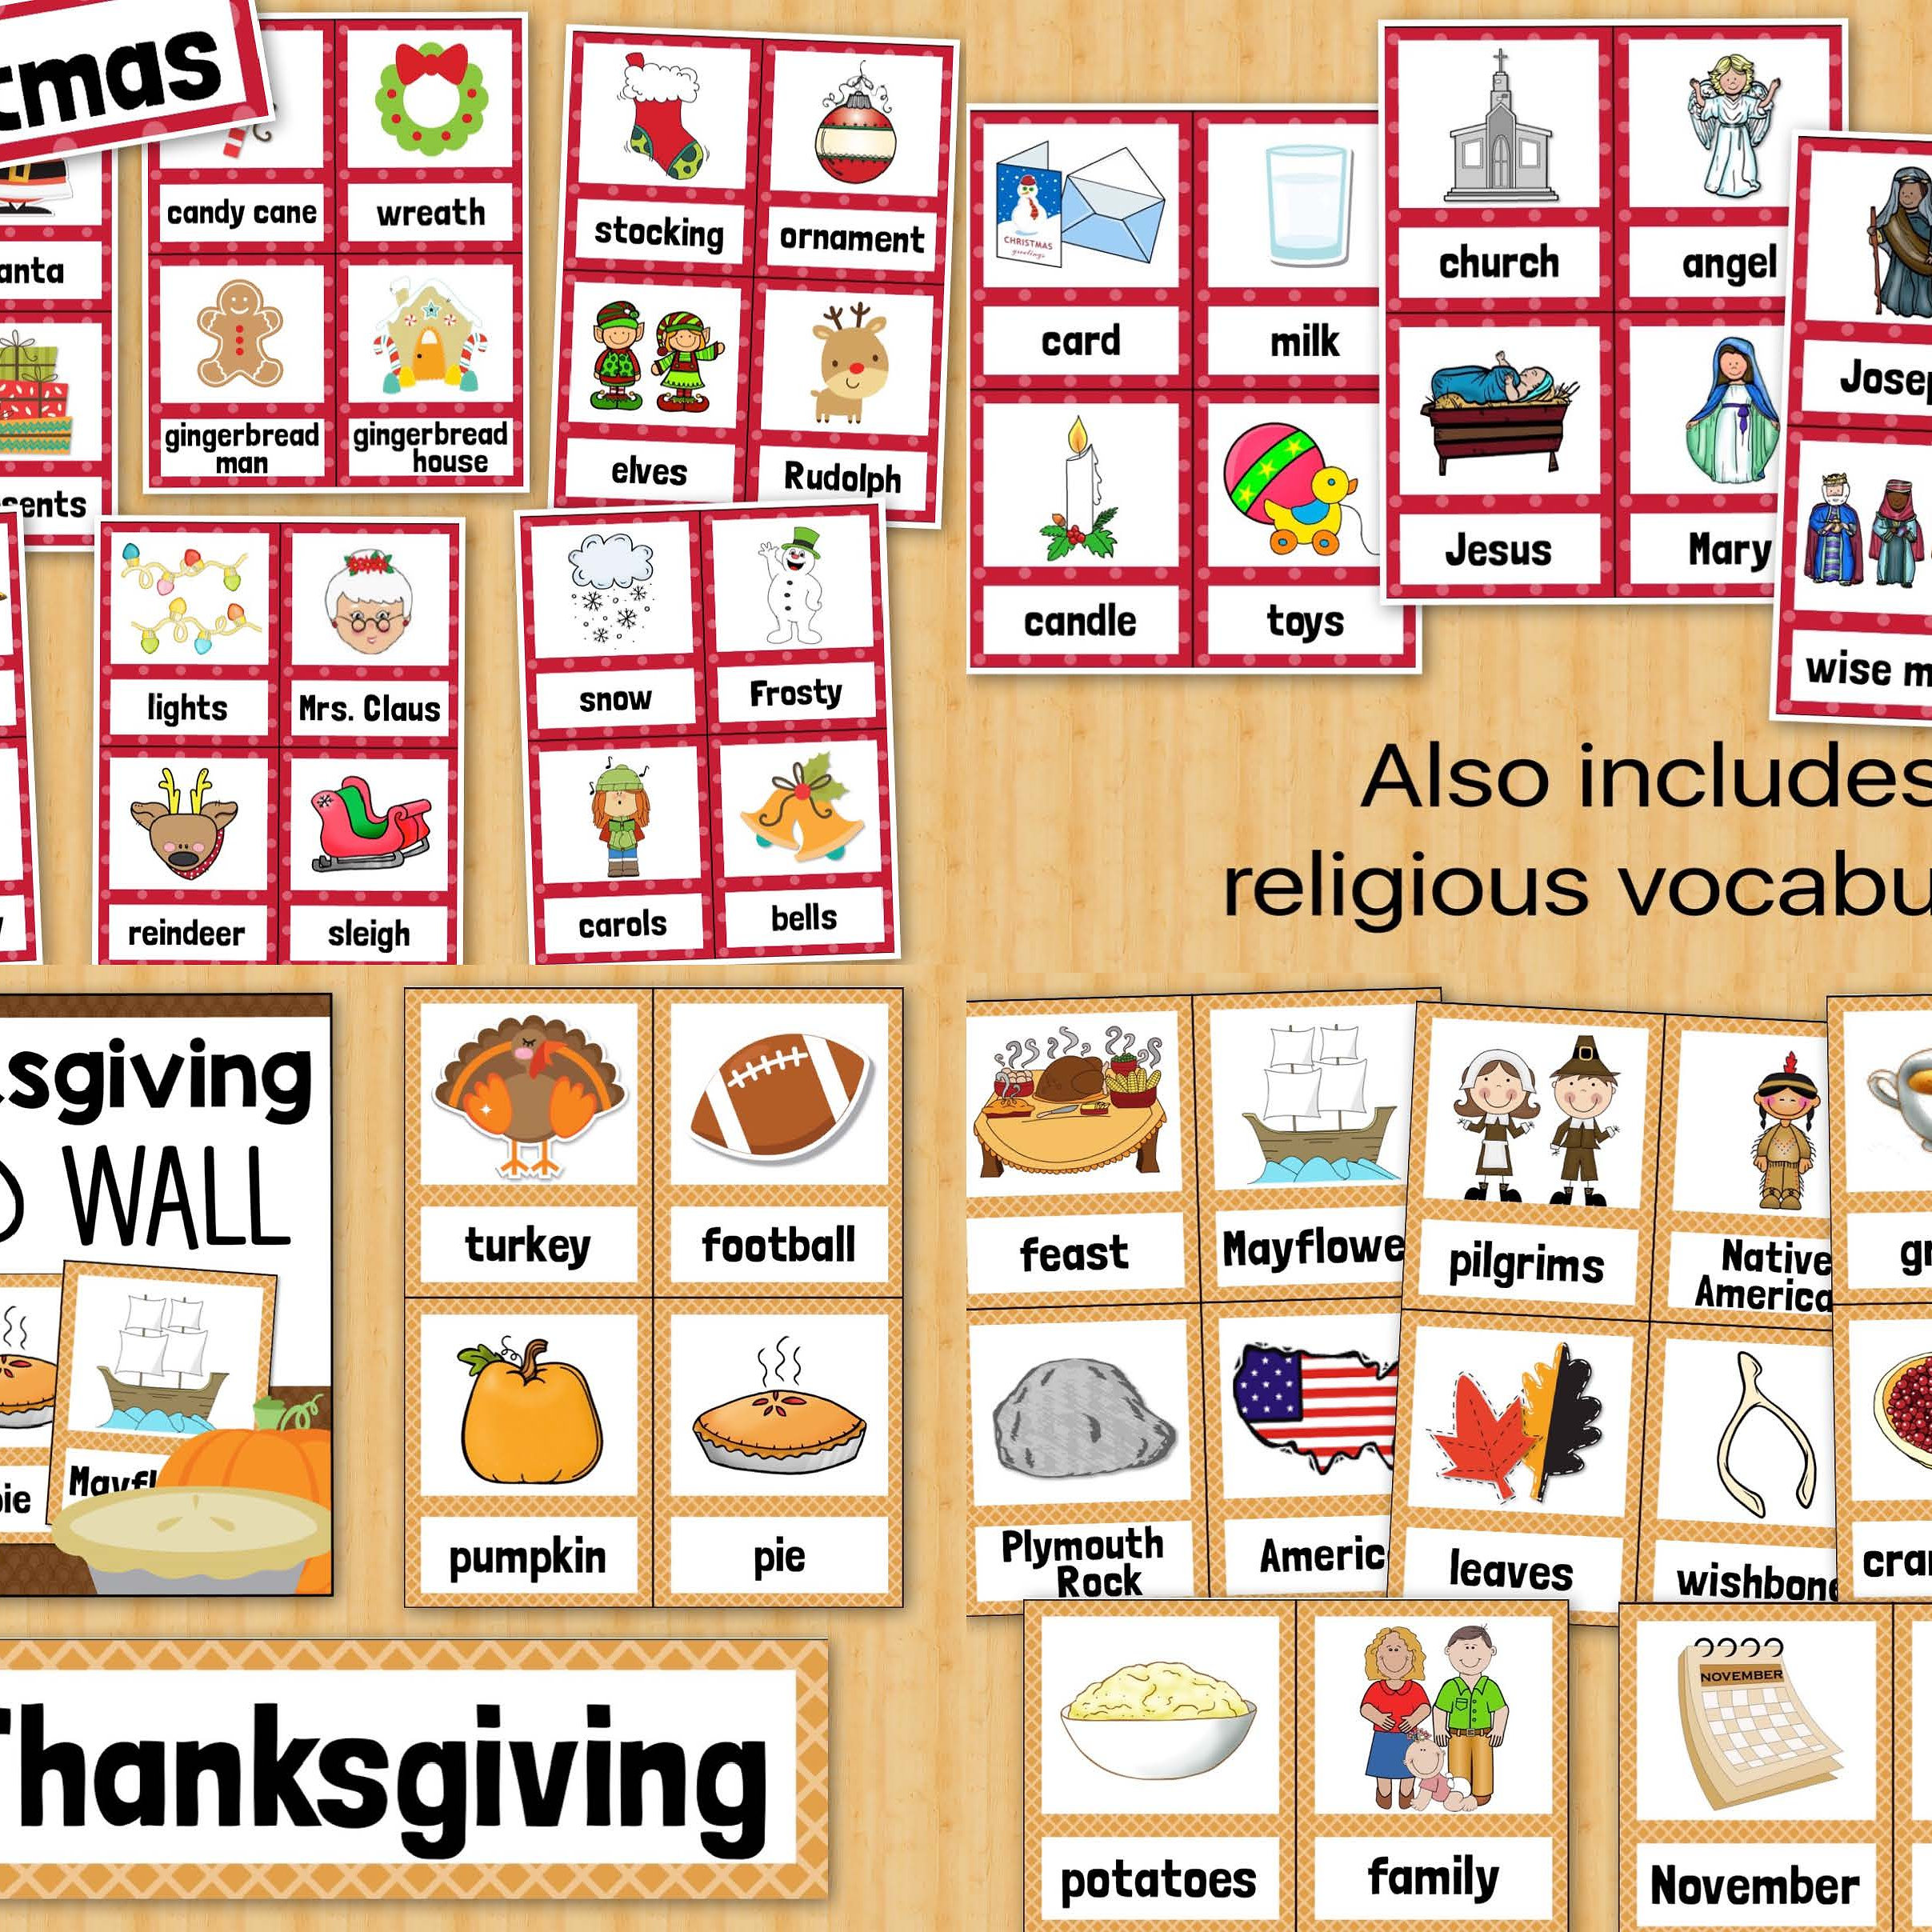 Funky Vocabulary Word Wall Ideas Illustration - Wall Art Collections ...